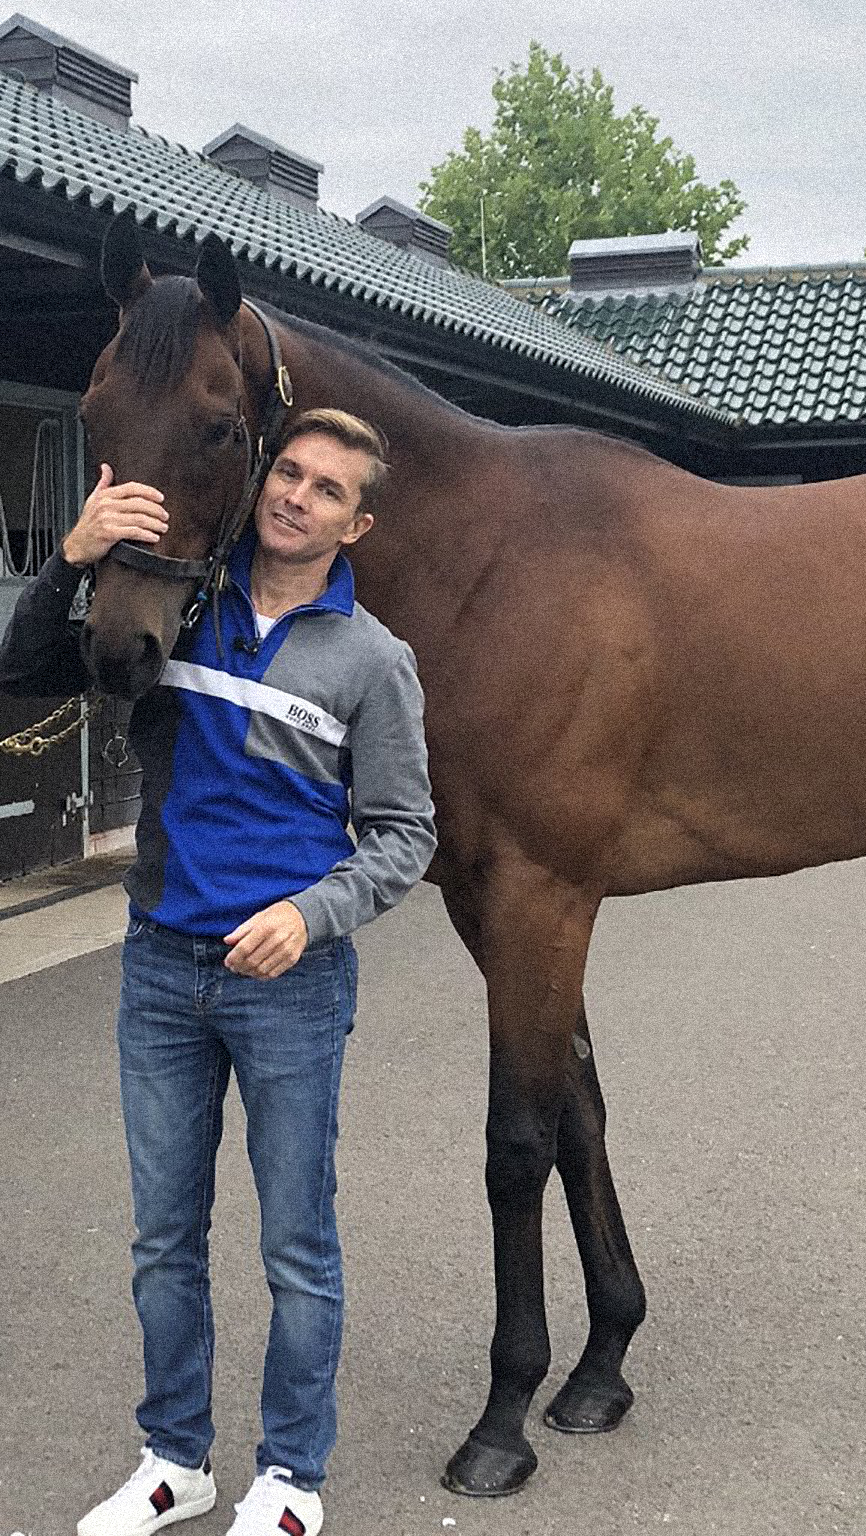 Reunited: Richard Mullen with Reynaldothewizard in Newmarket. Picture: Richard Mullen